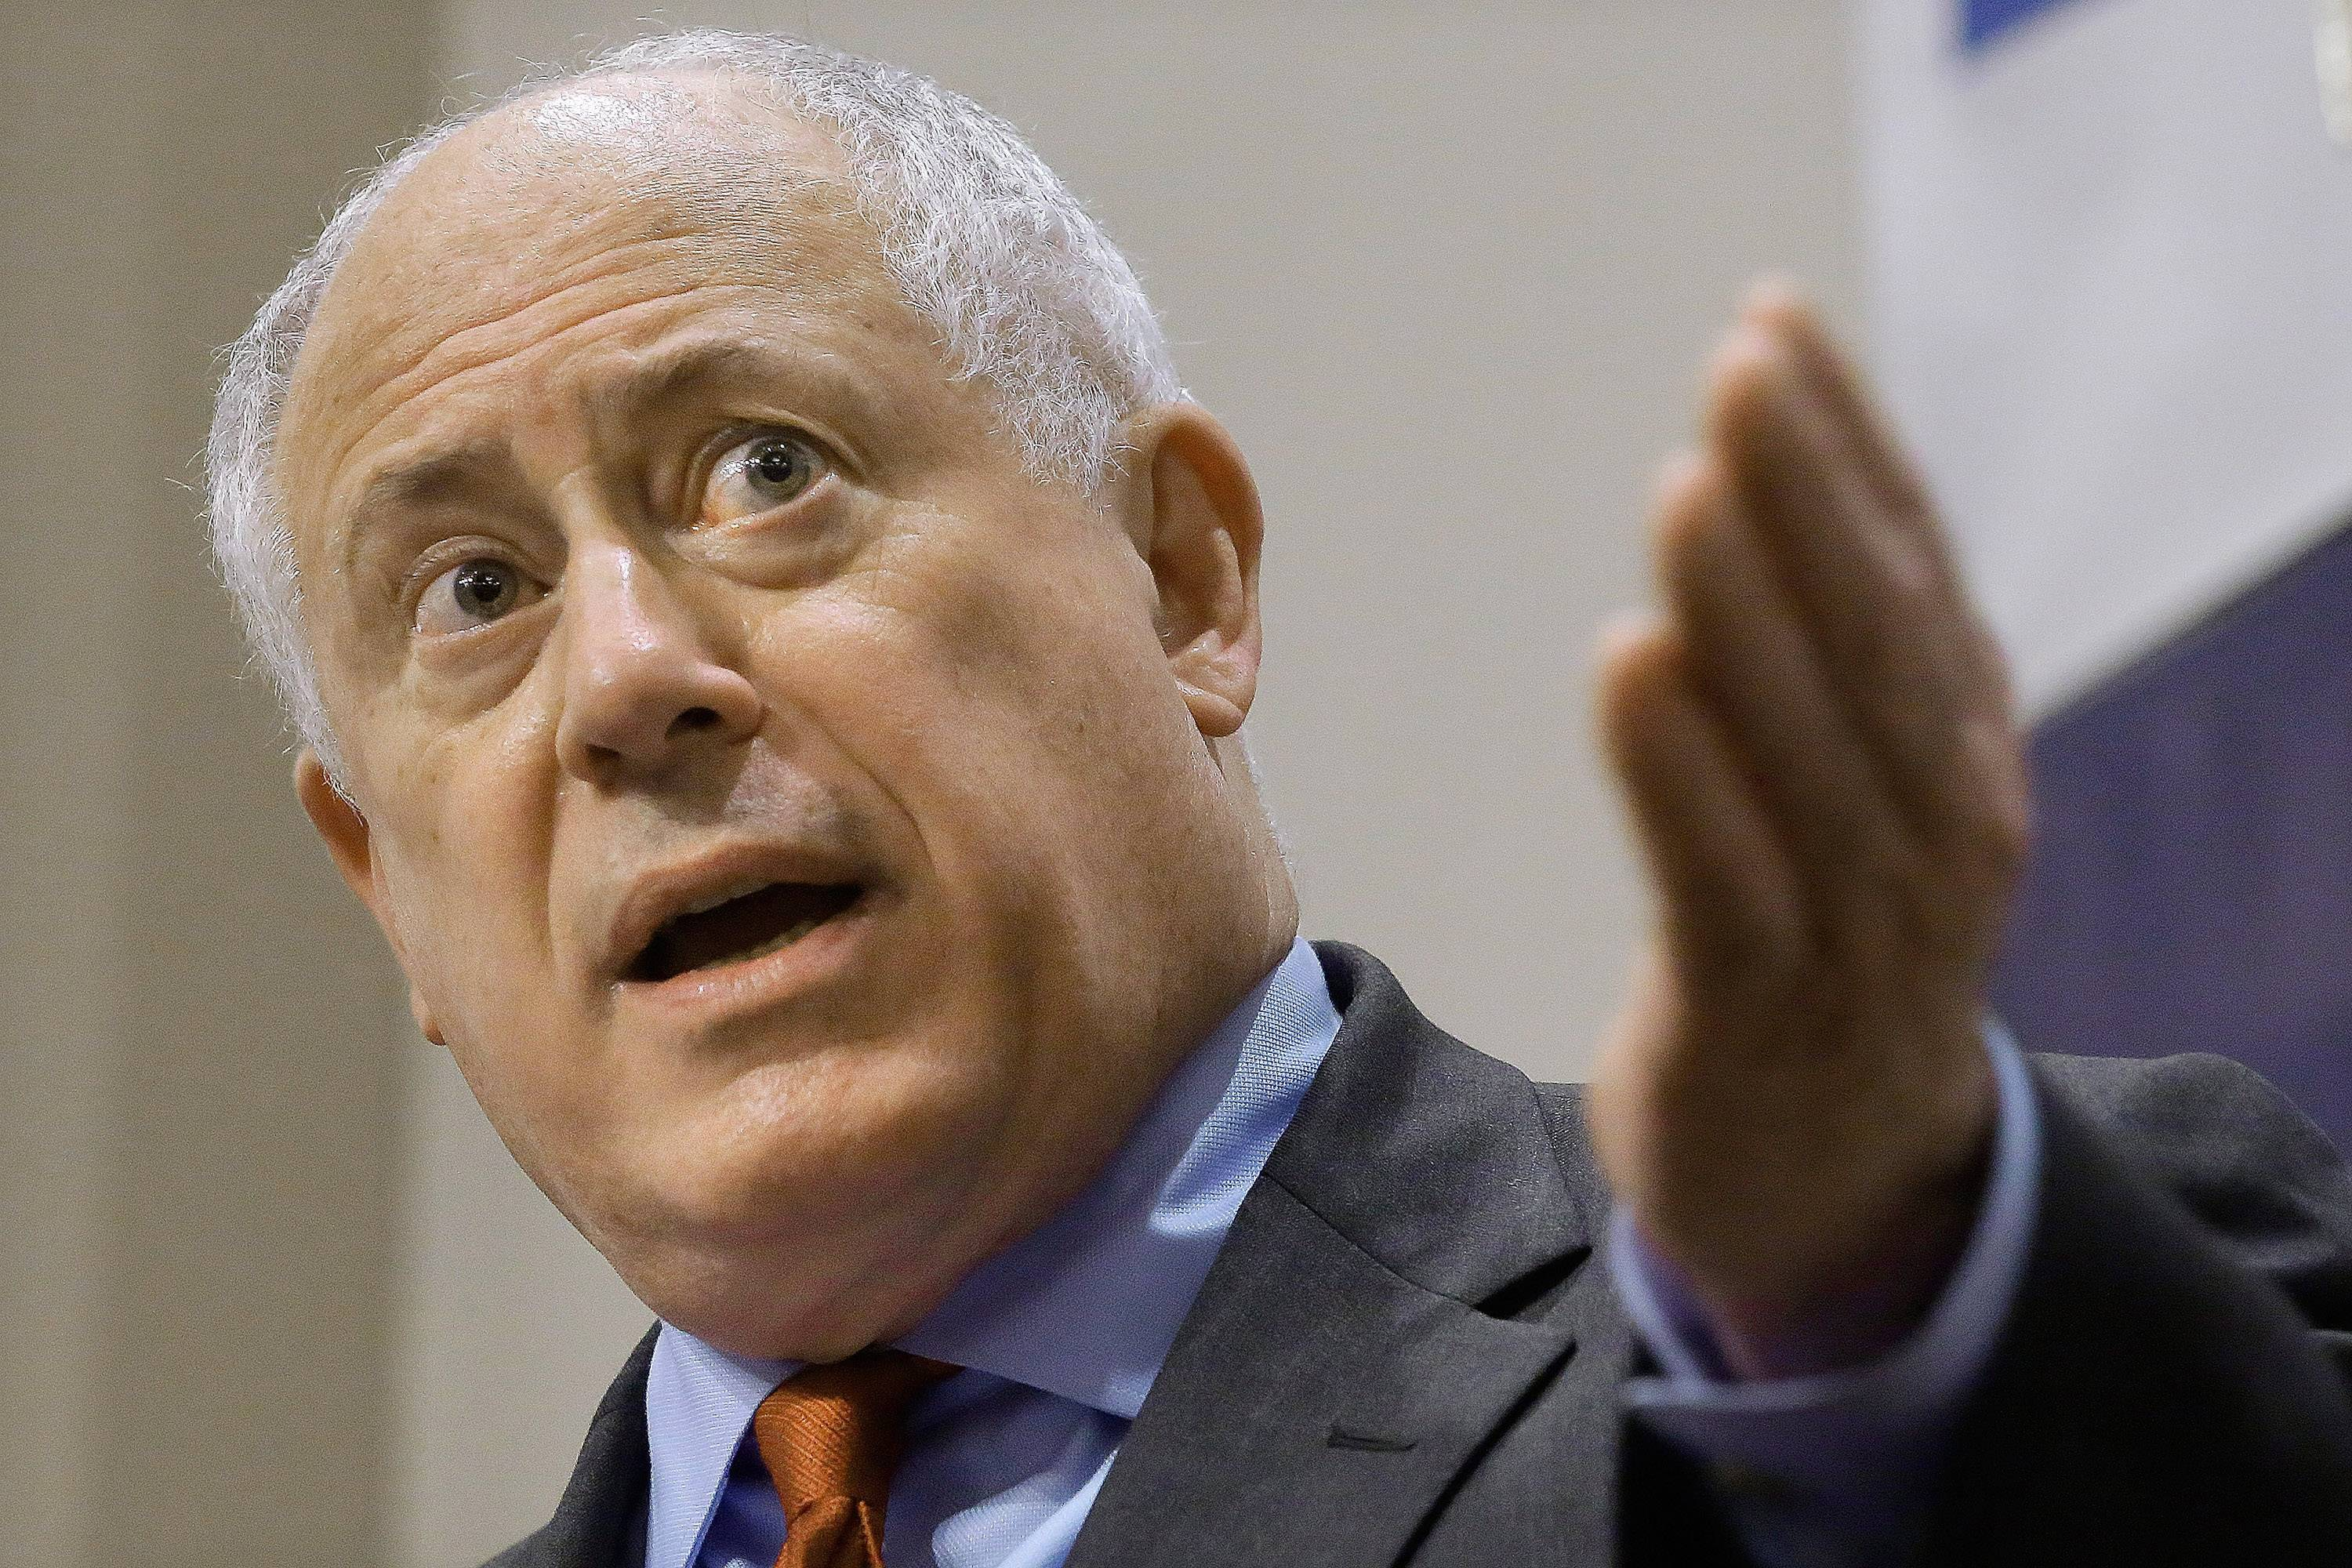 Illinois Gov. Pat Quinn said no to increasing speed limits on tollways through the suburbs to 70 mph.